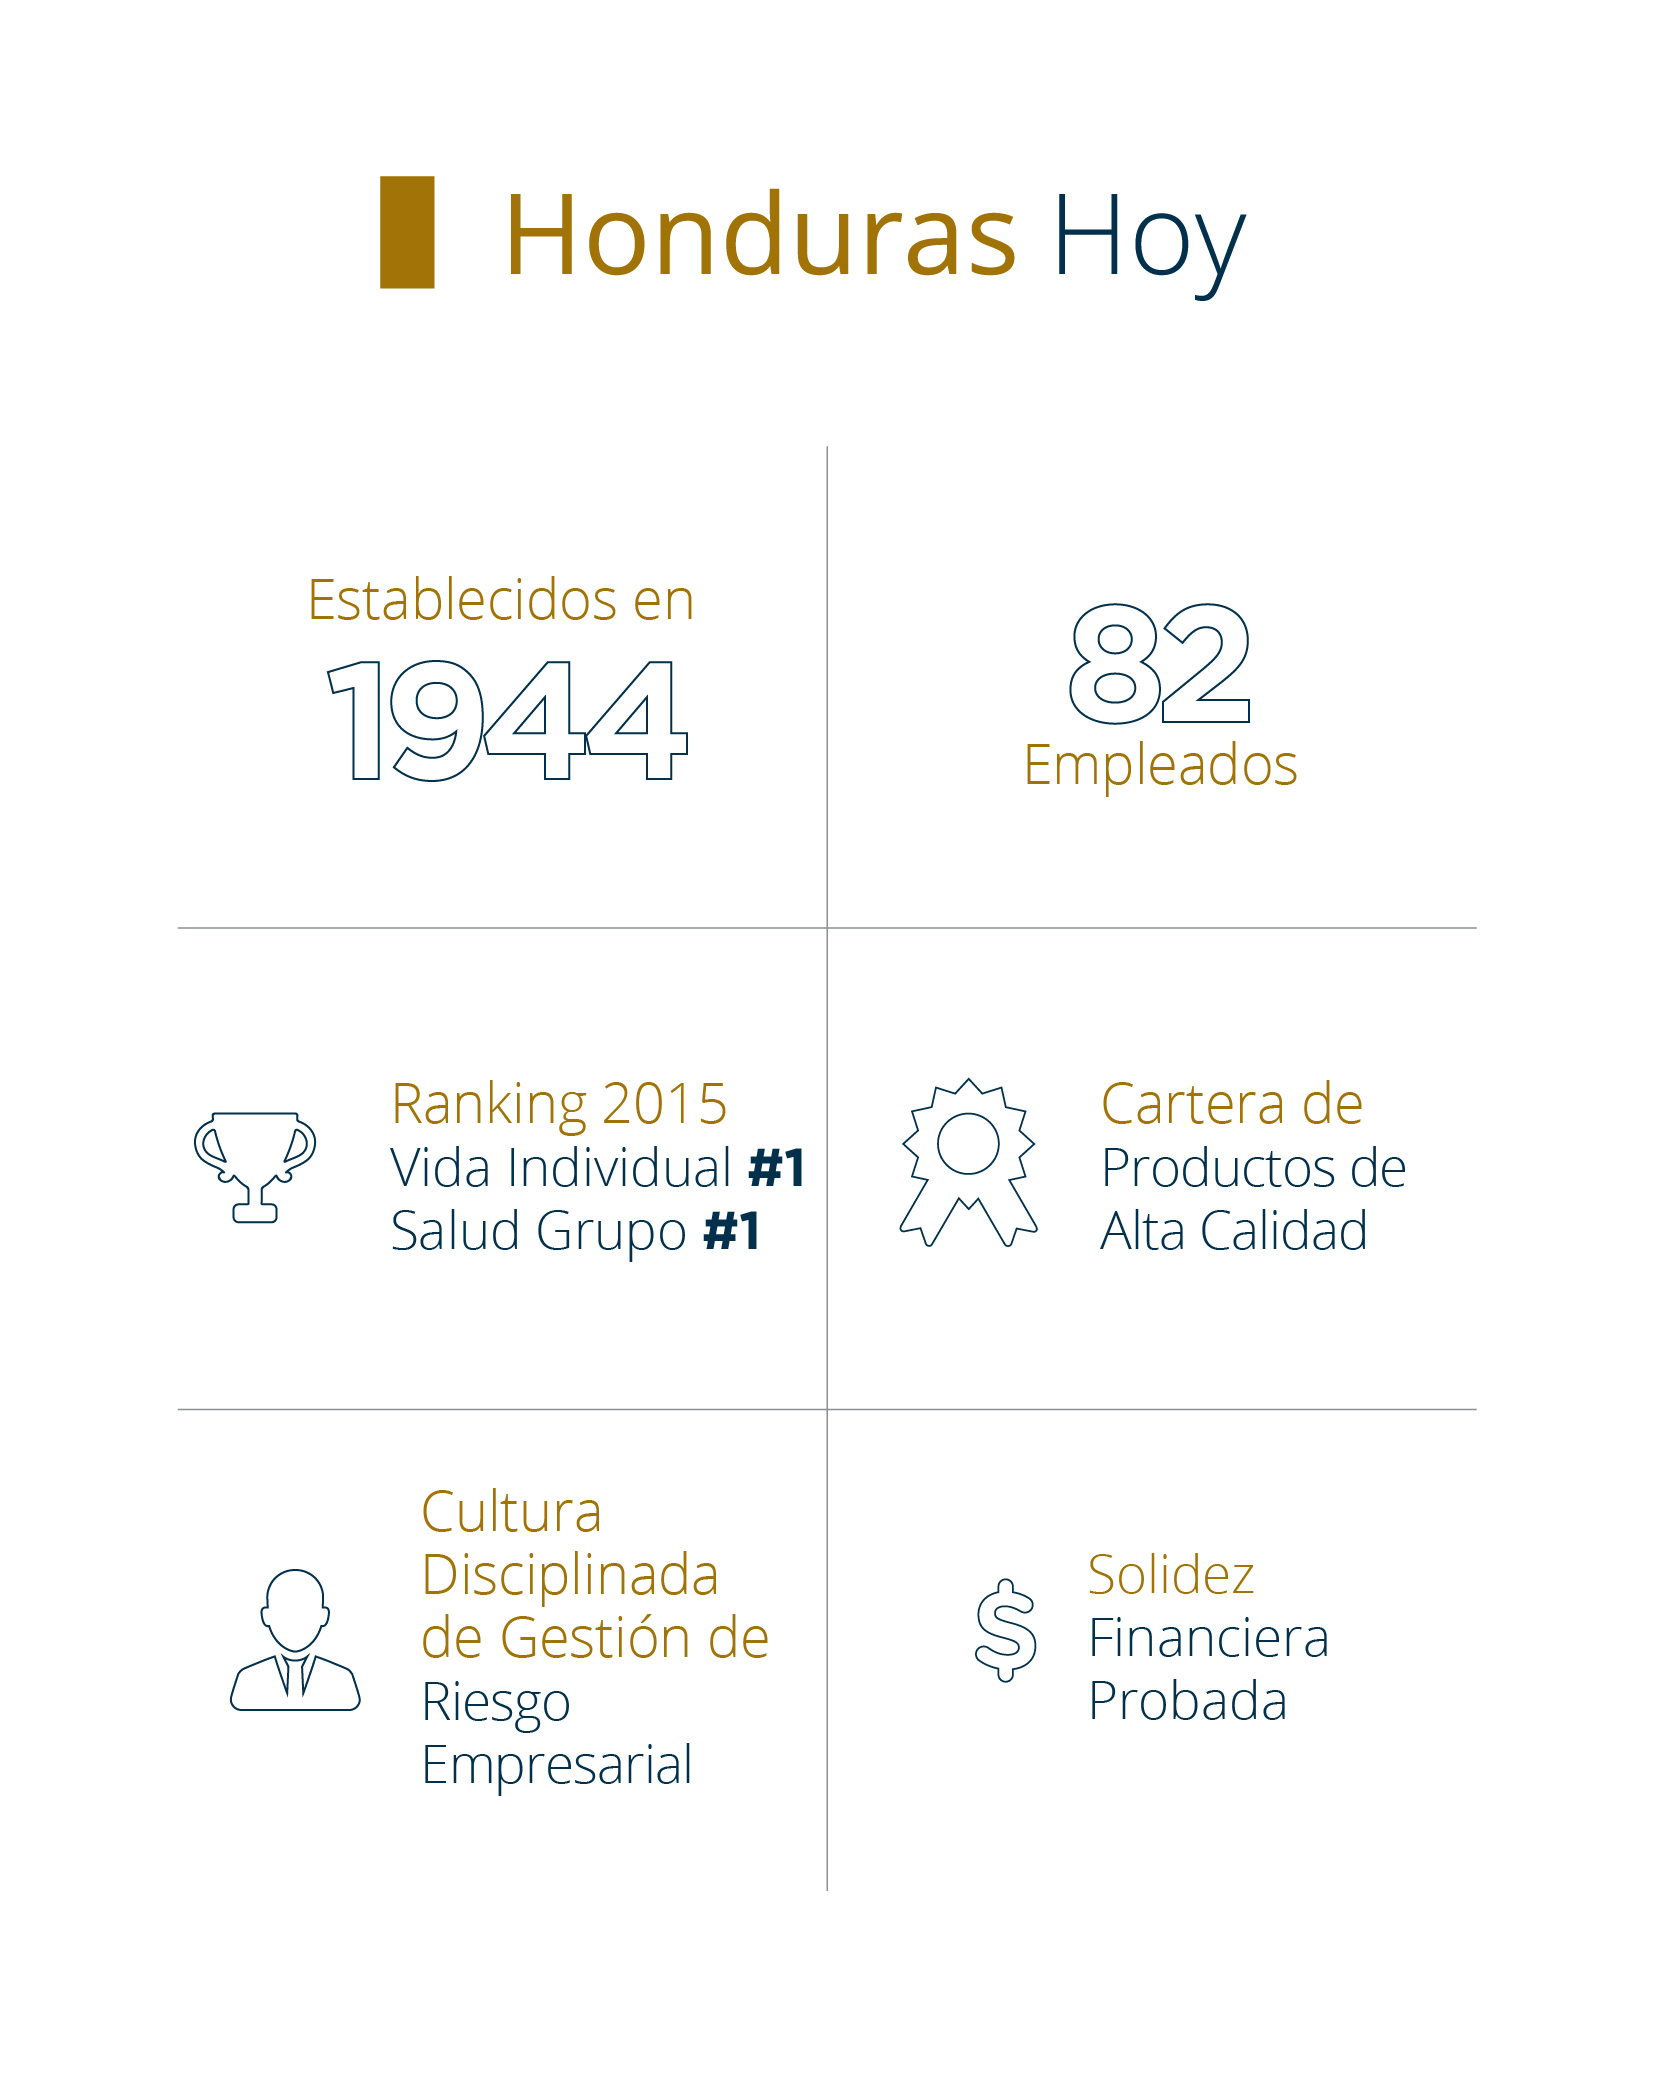 Sobre Pan-American Life Insurance Group de Honduras